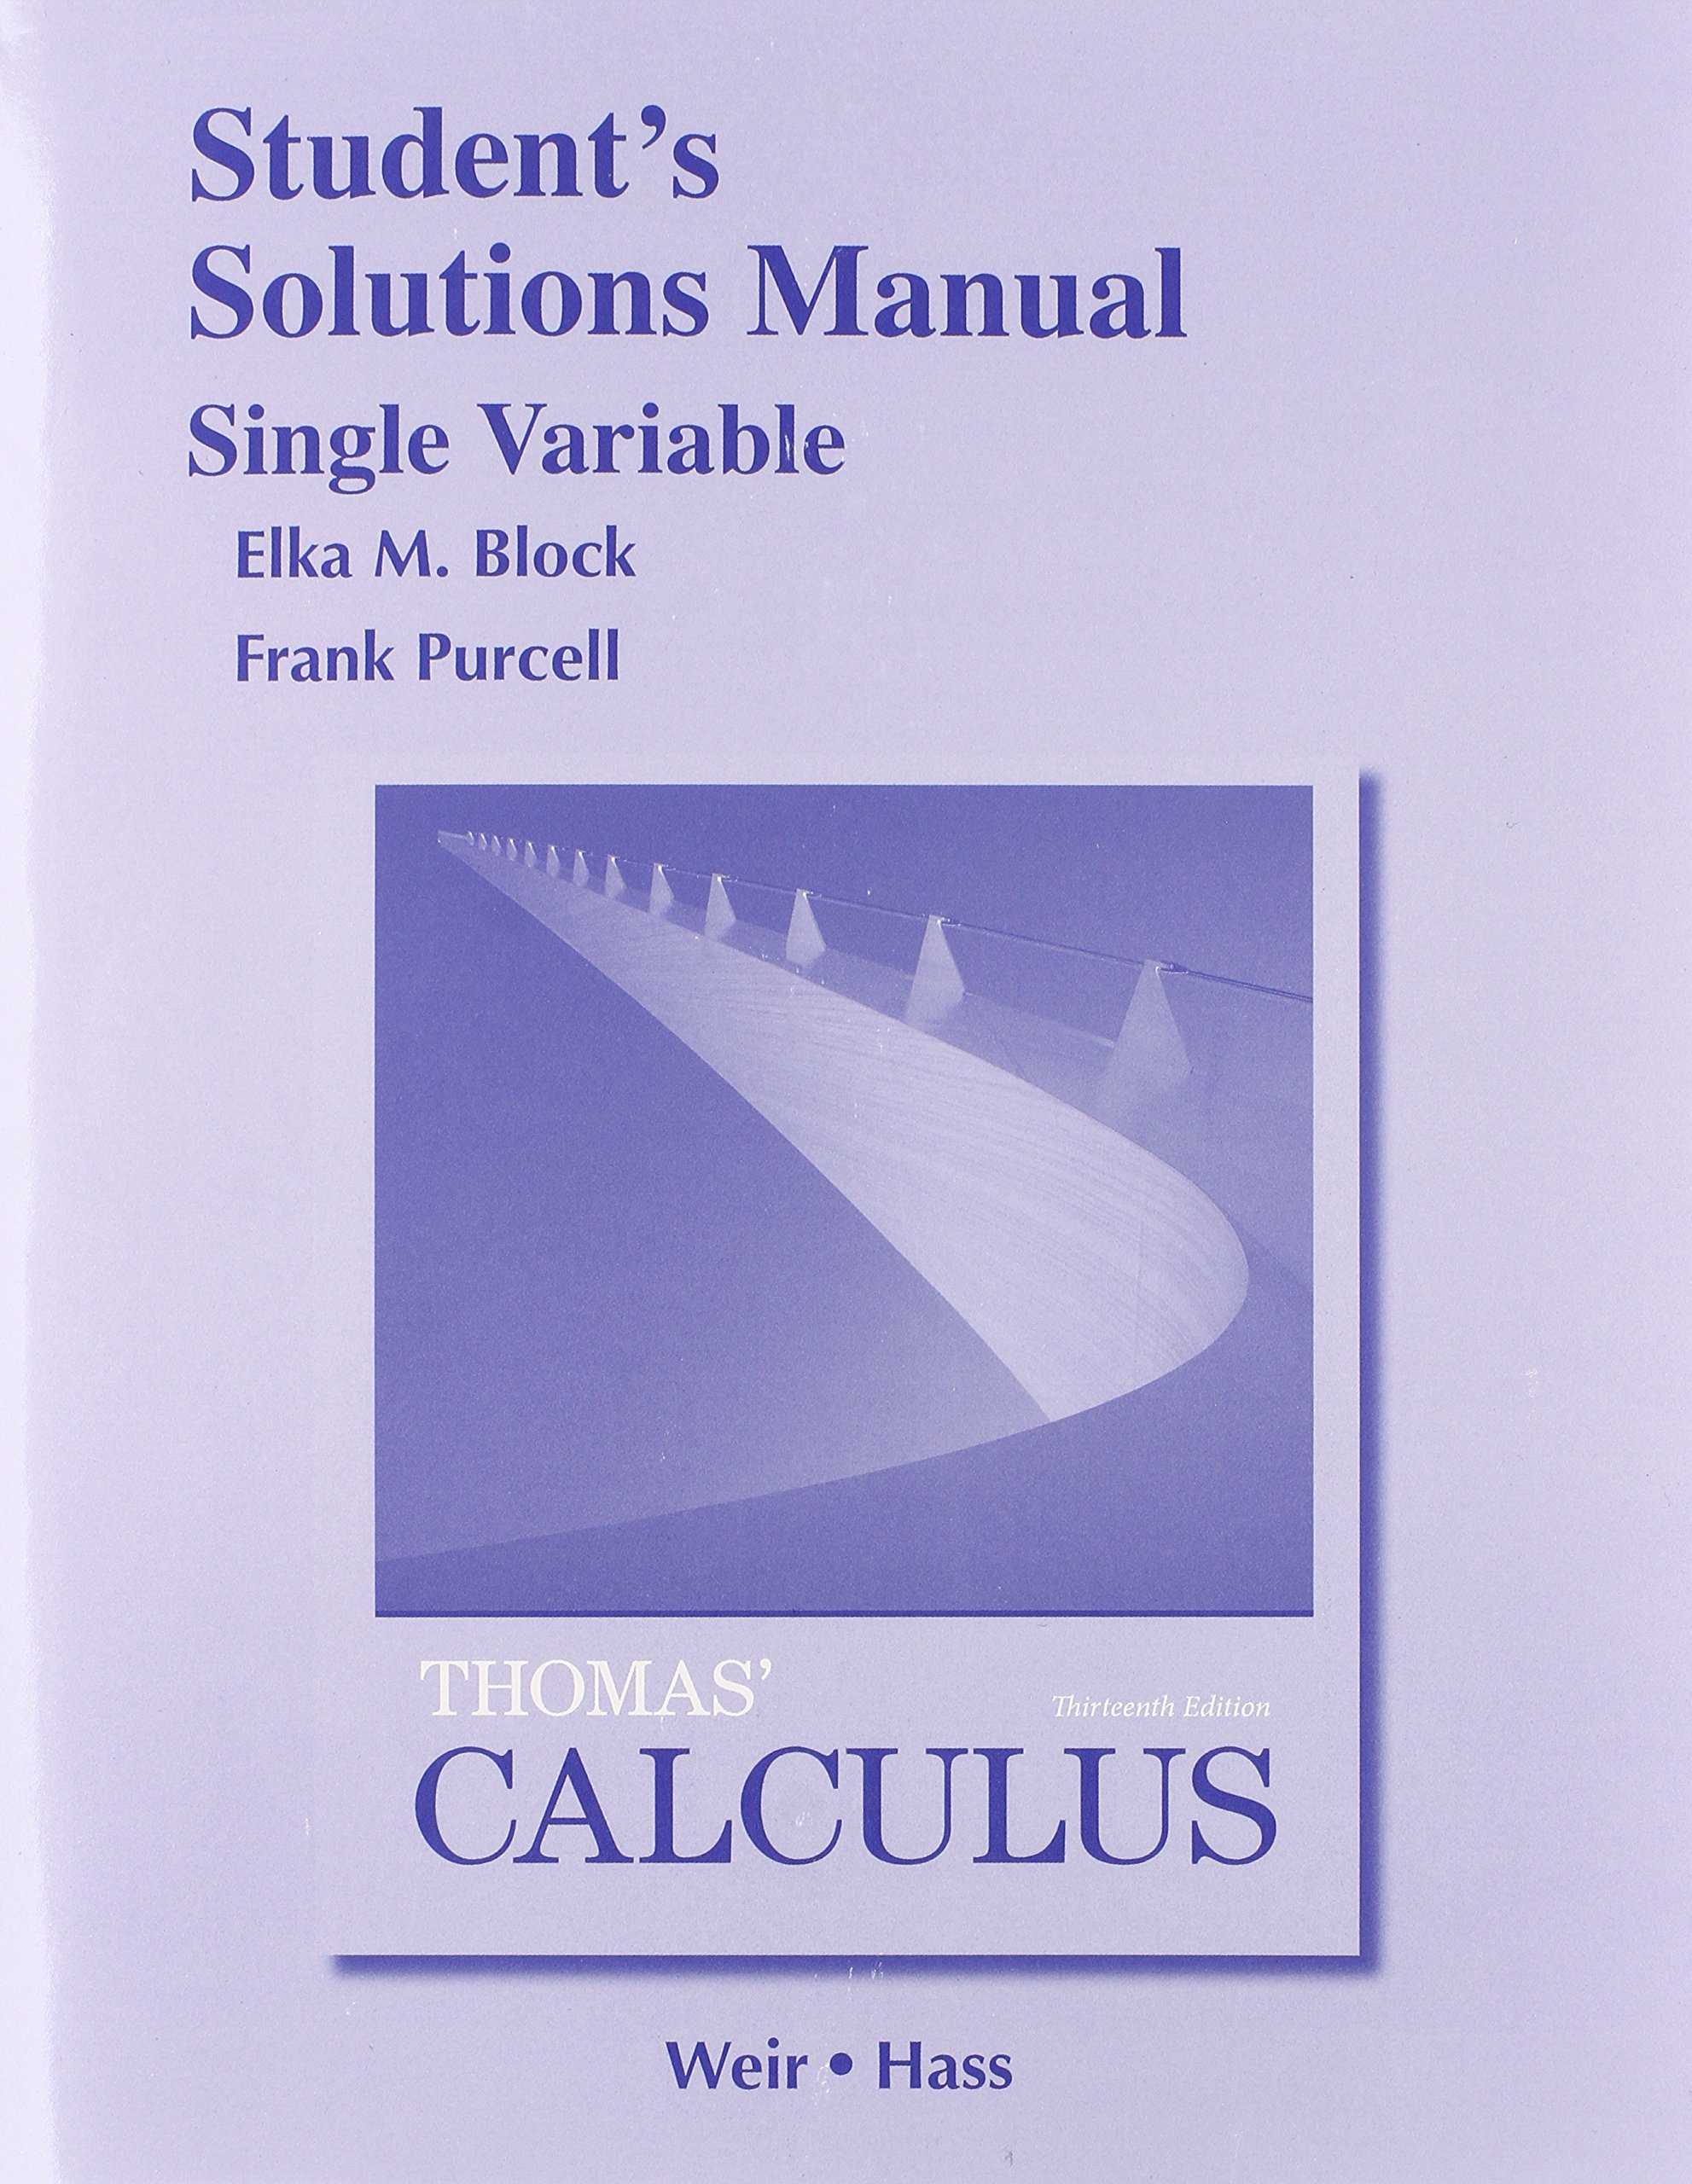 Student Solutions Manual, Single Variable for Thomas' Calculus: George B.  Thomas Jr., Maurice D. Weir, Joel R. Hass: 9780321955005: Books - Amazon.ca